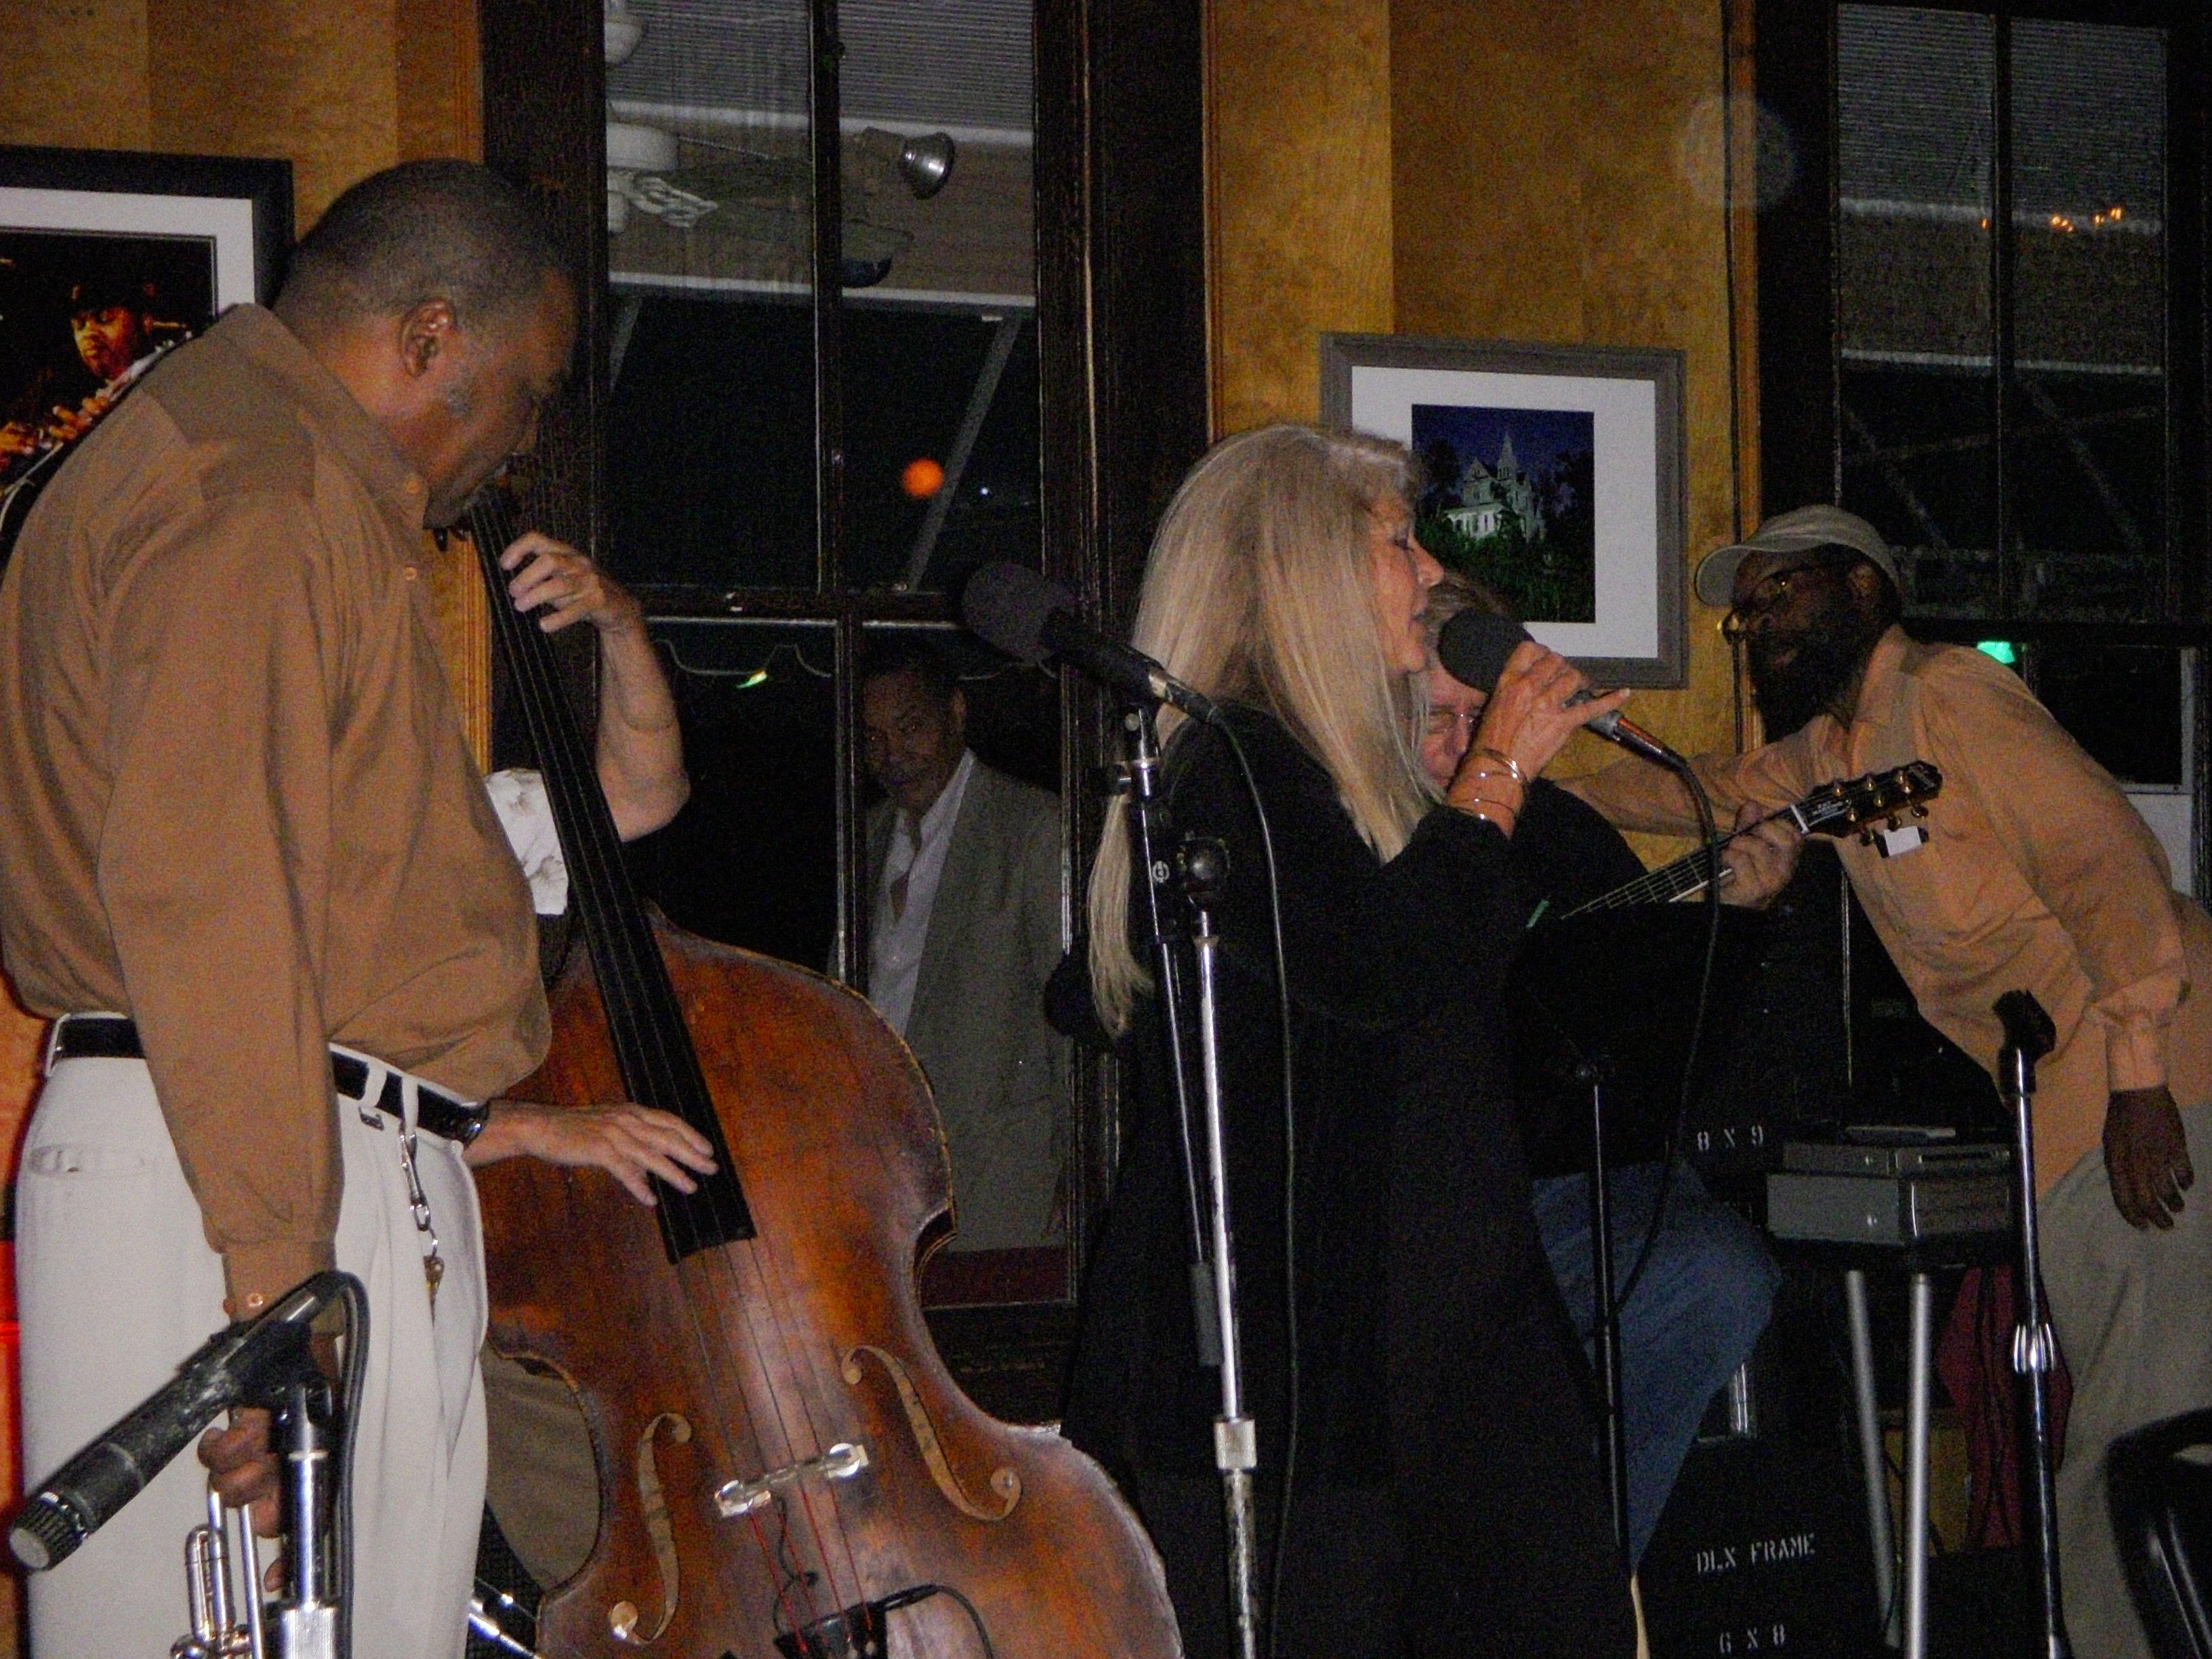 Dena Blue Performs at Phil & Derek's Restaurant and Wine Bar - Monday Night Jazz Jam with T. R. Reed and the Gang